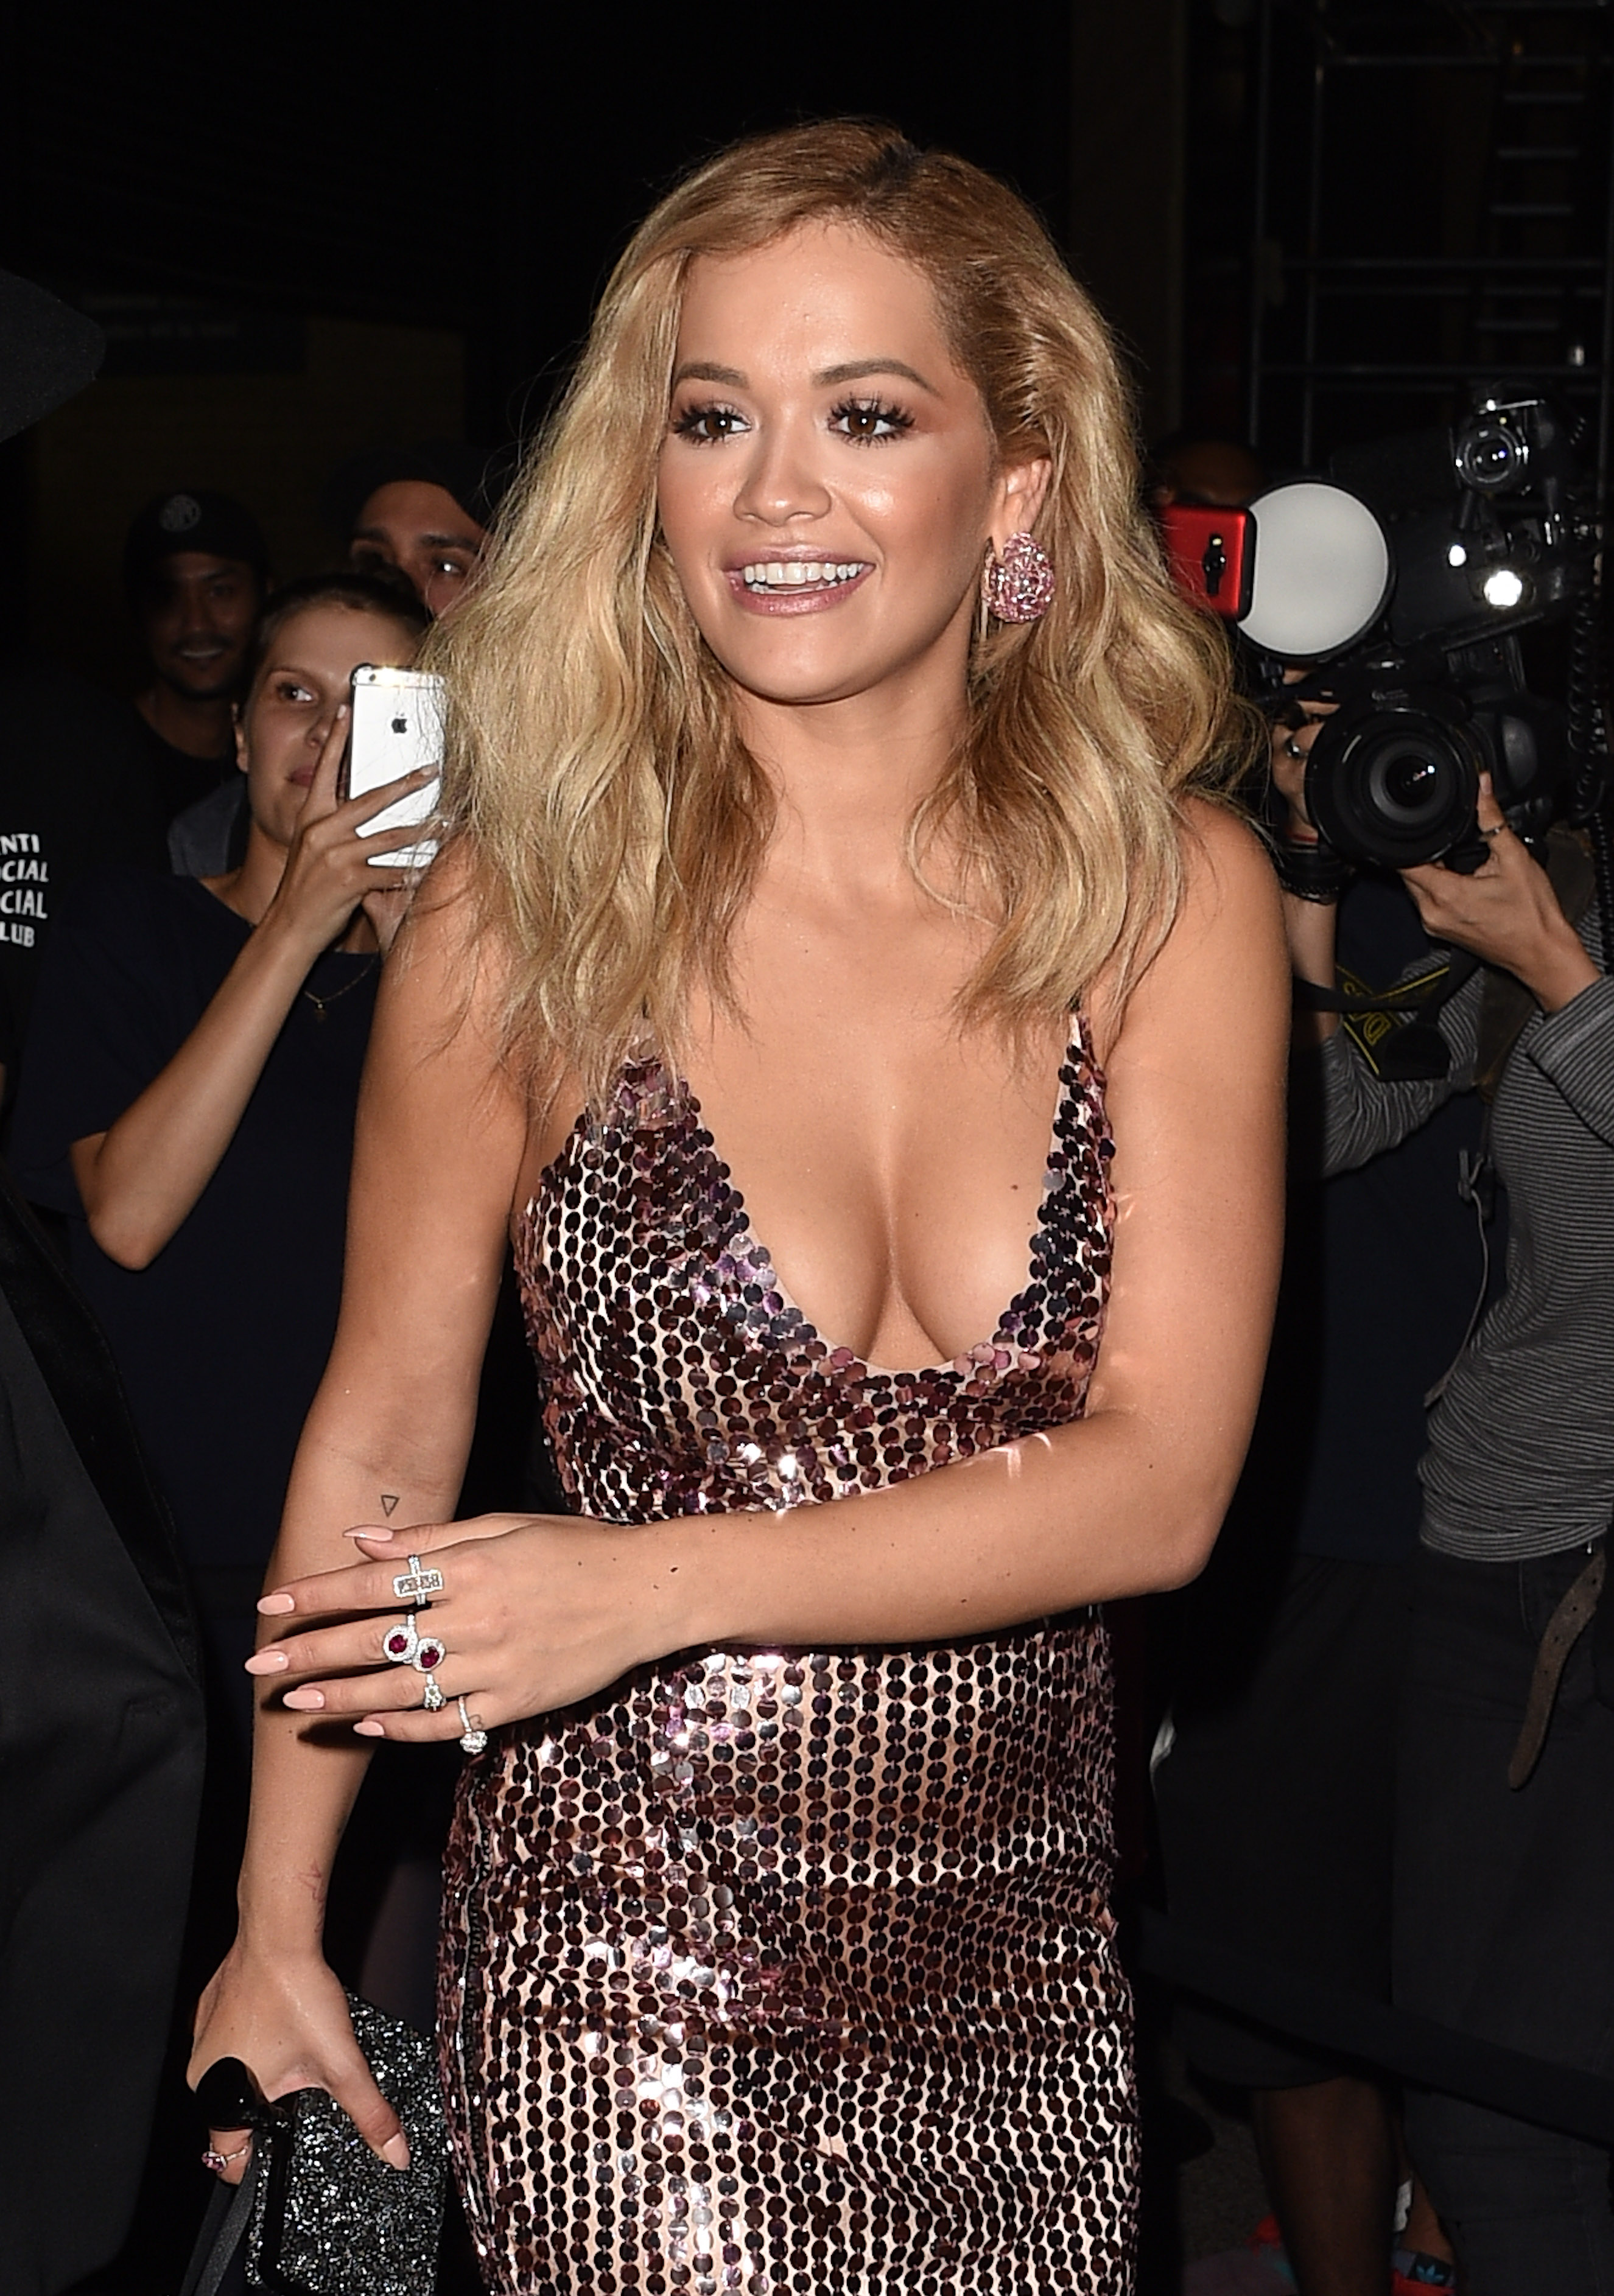 Rita Ora Cleavage Photos